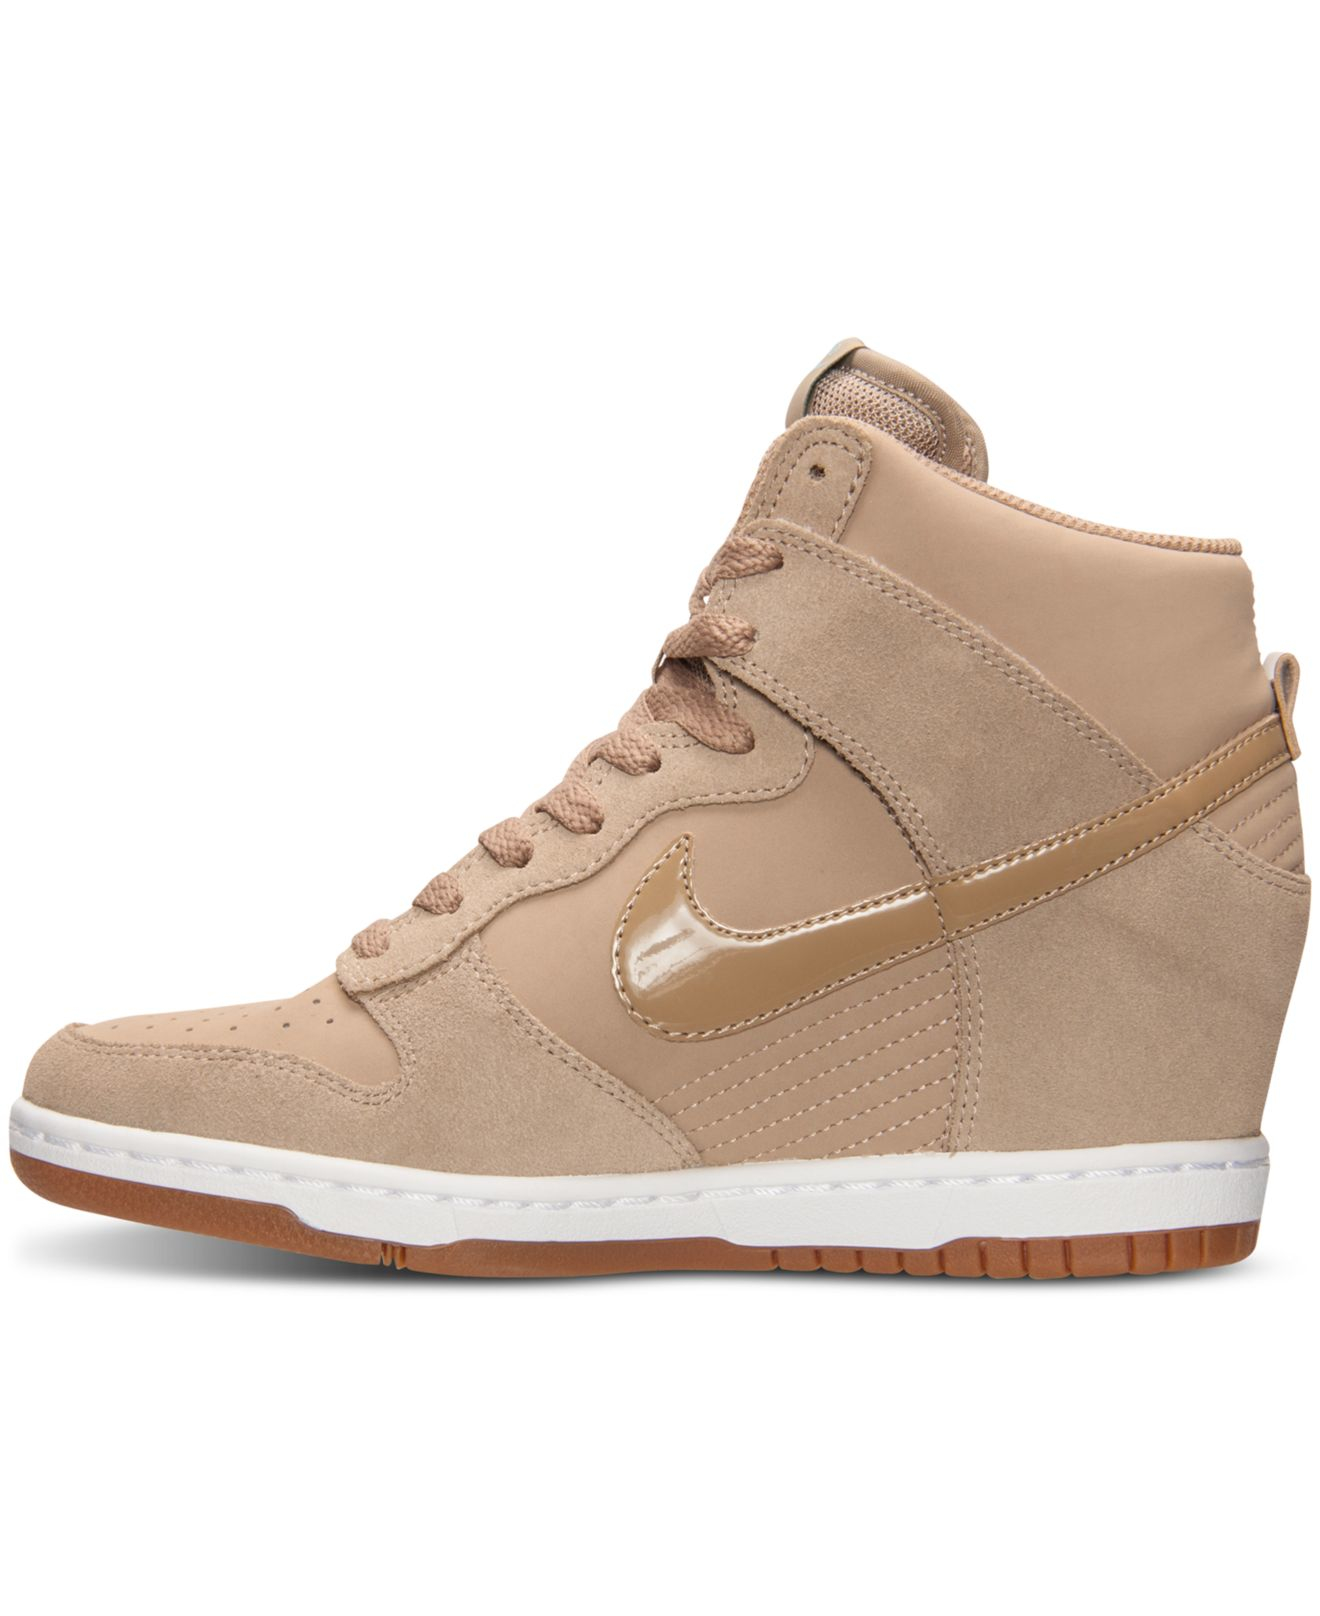 premium selection fa3ab 3062d Previously sold at Macys · Womens Nike Dunk Sky Hi Womens Nike Dunk Womens Nike  Dunk Sky Hi Essential Sneakers ...